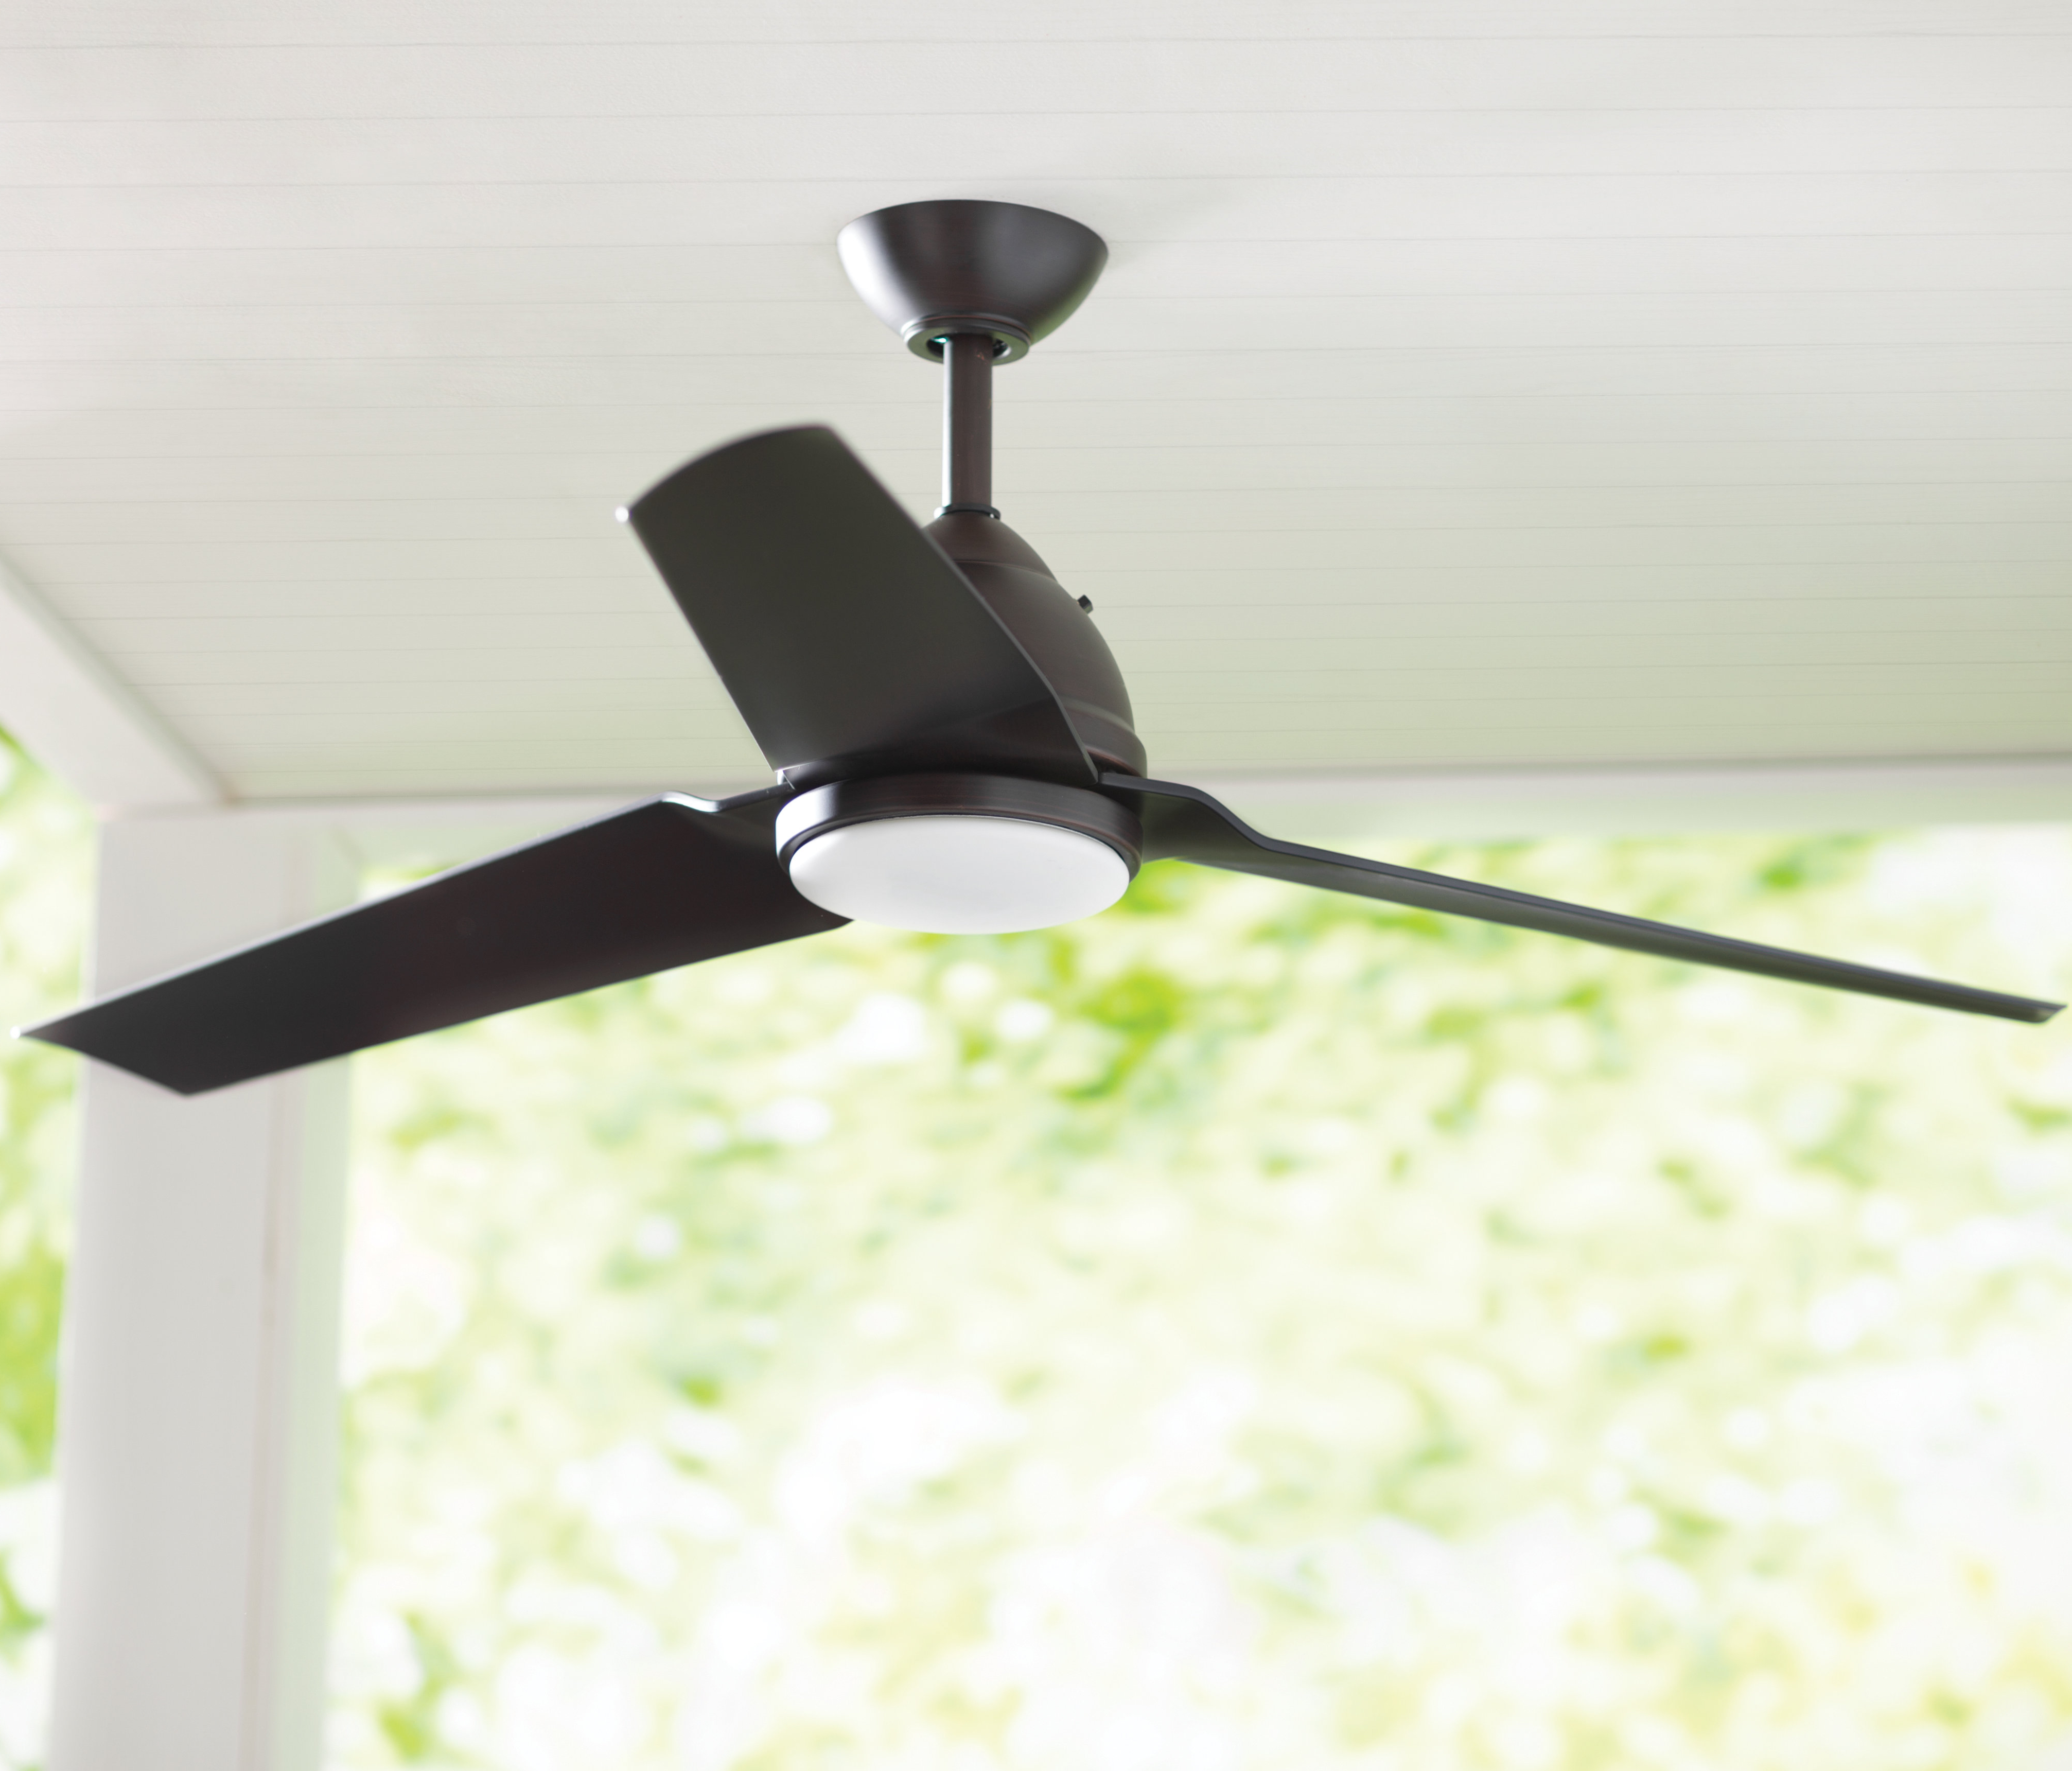 Wayfair With Regard To Auden 5 Blade Led Ceiling Fans (View 17 of 20)